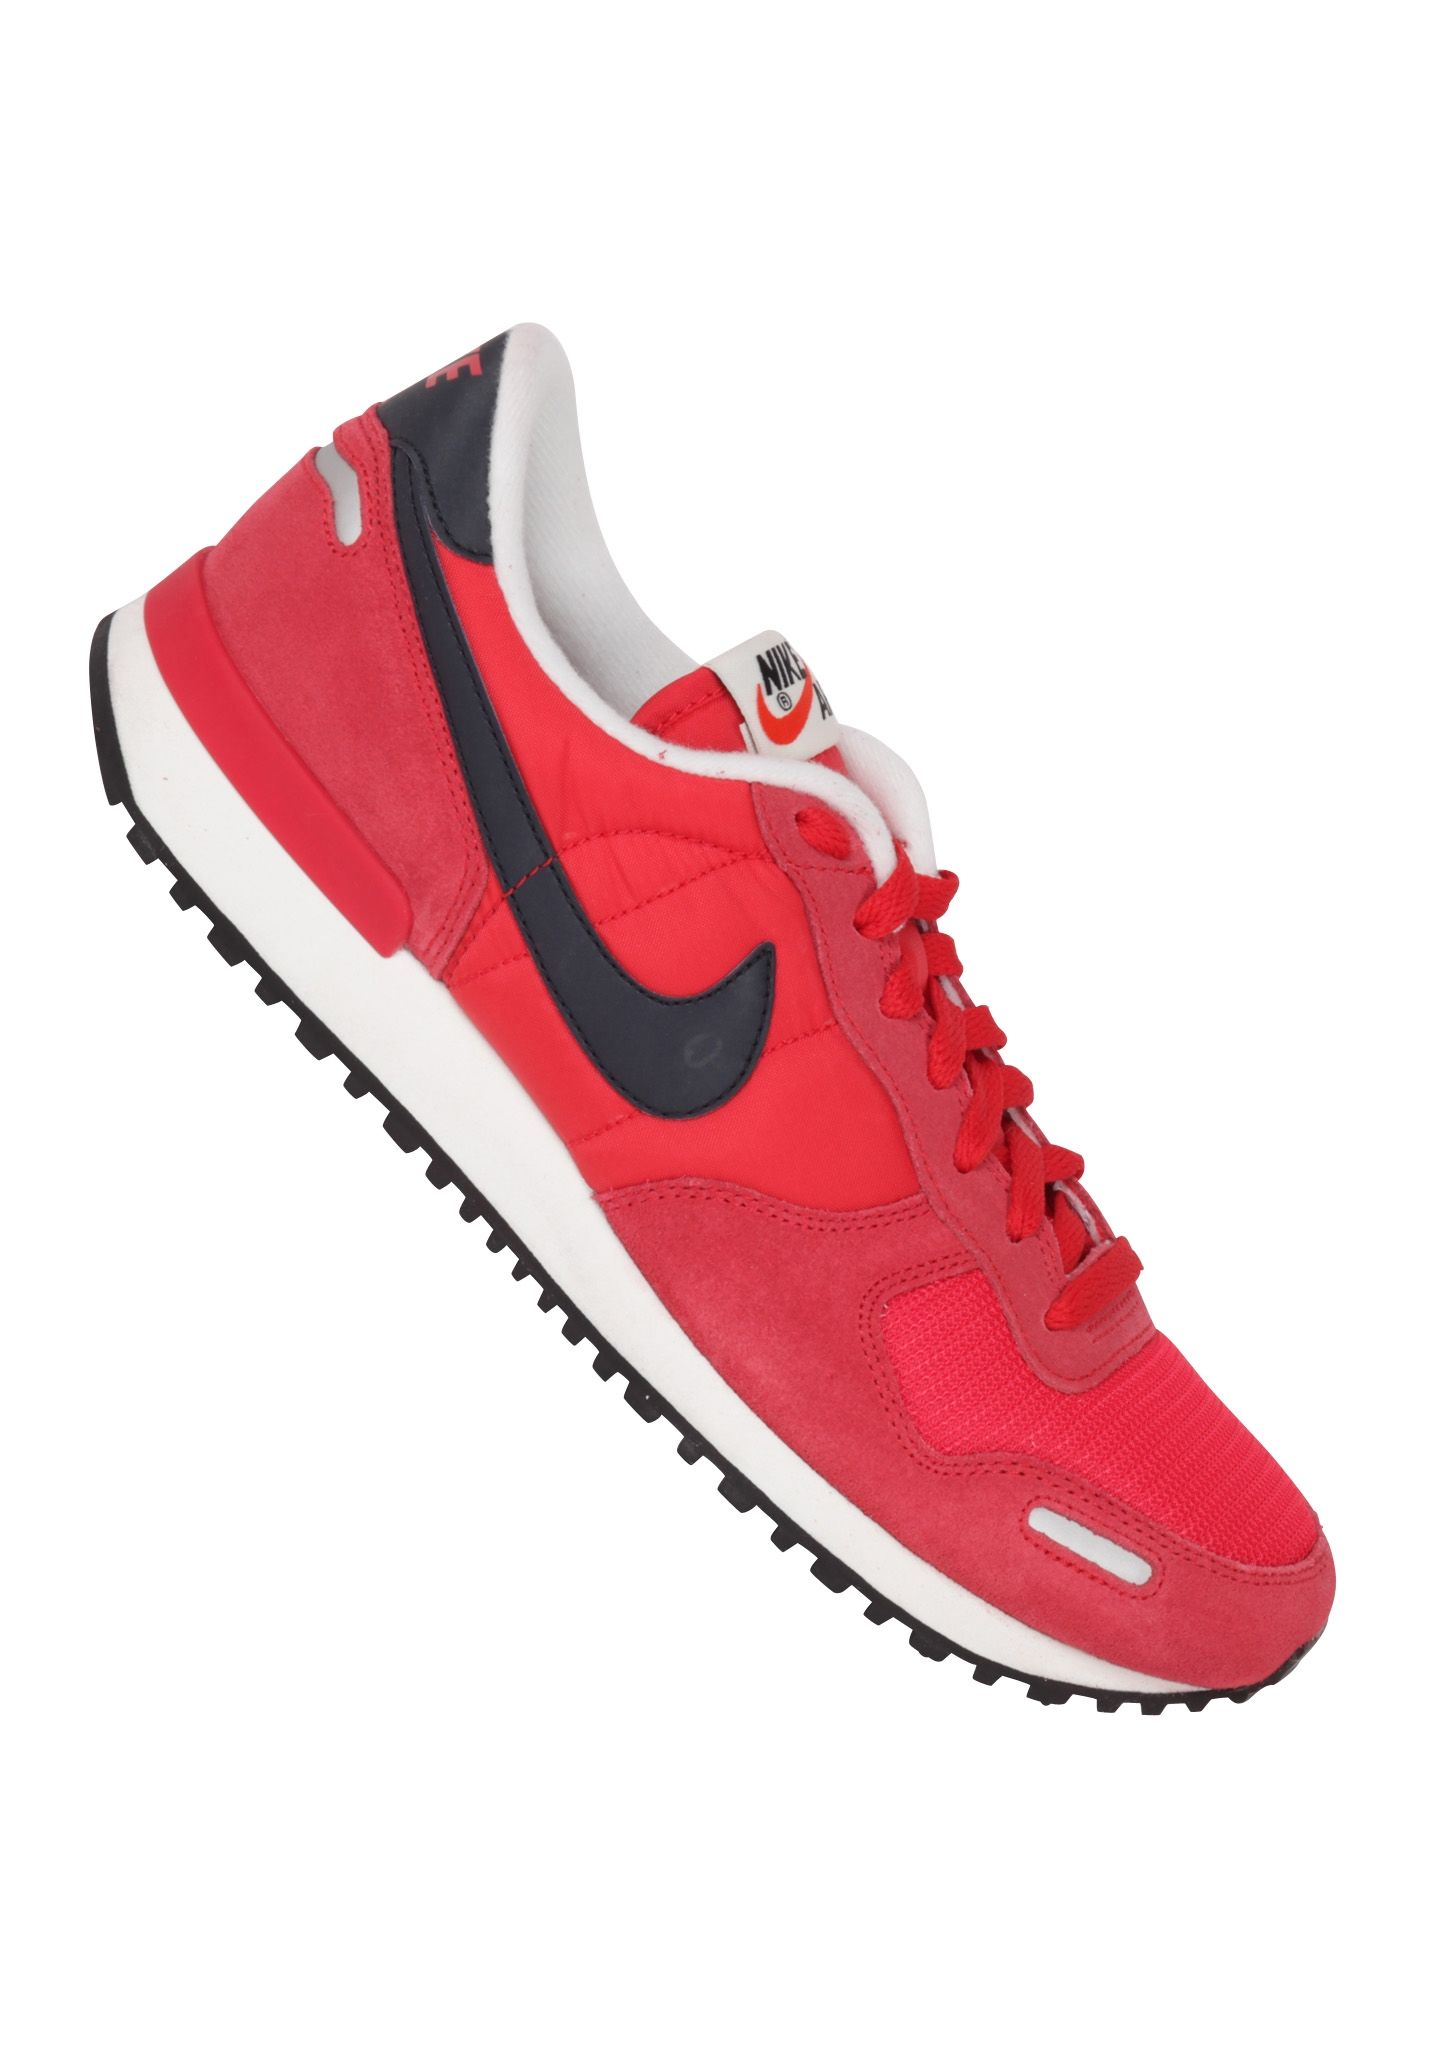 best service 6d079 3a0e9 NIKE SPORTSWEAR Air Vortex Retro - Sneaker für Herren - Rot - Planet Sports